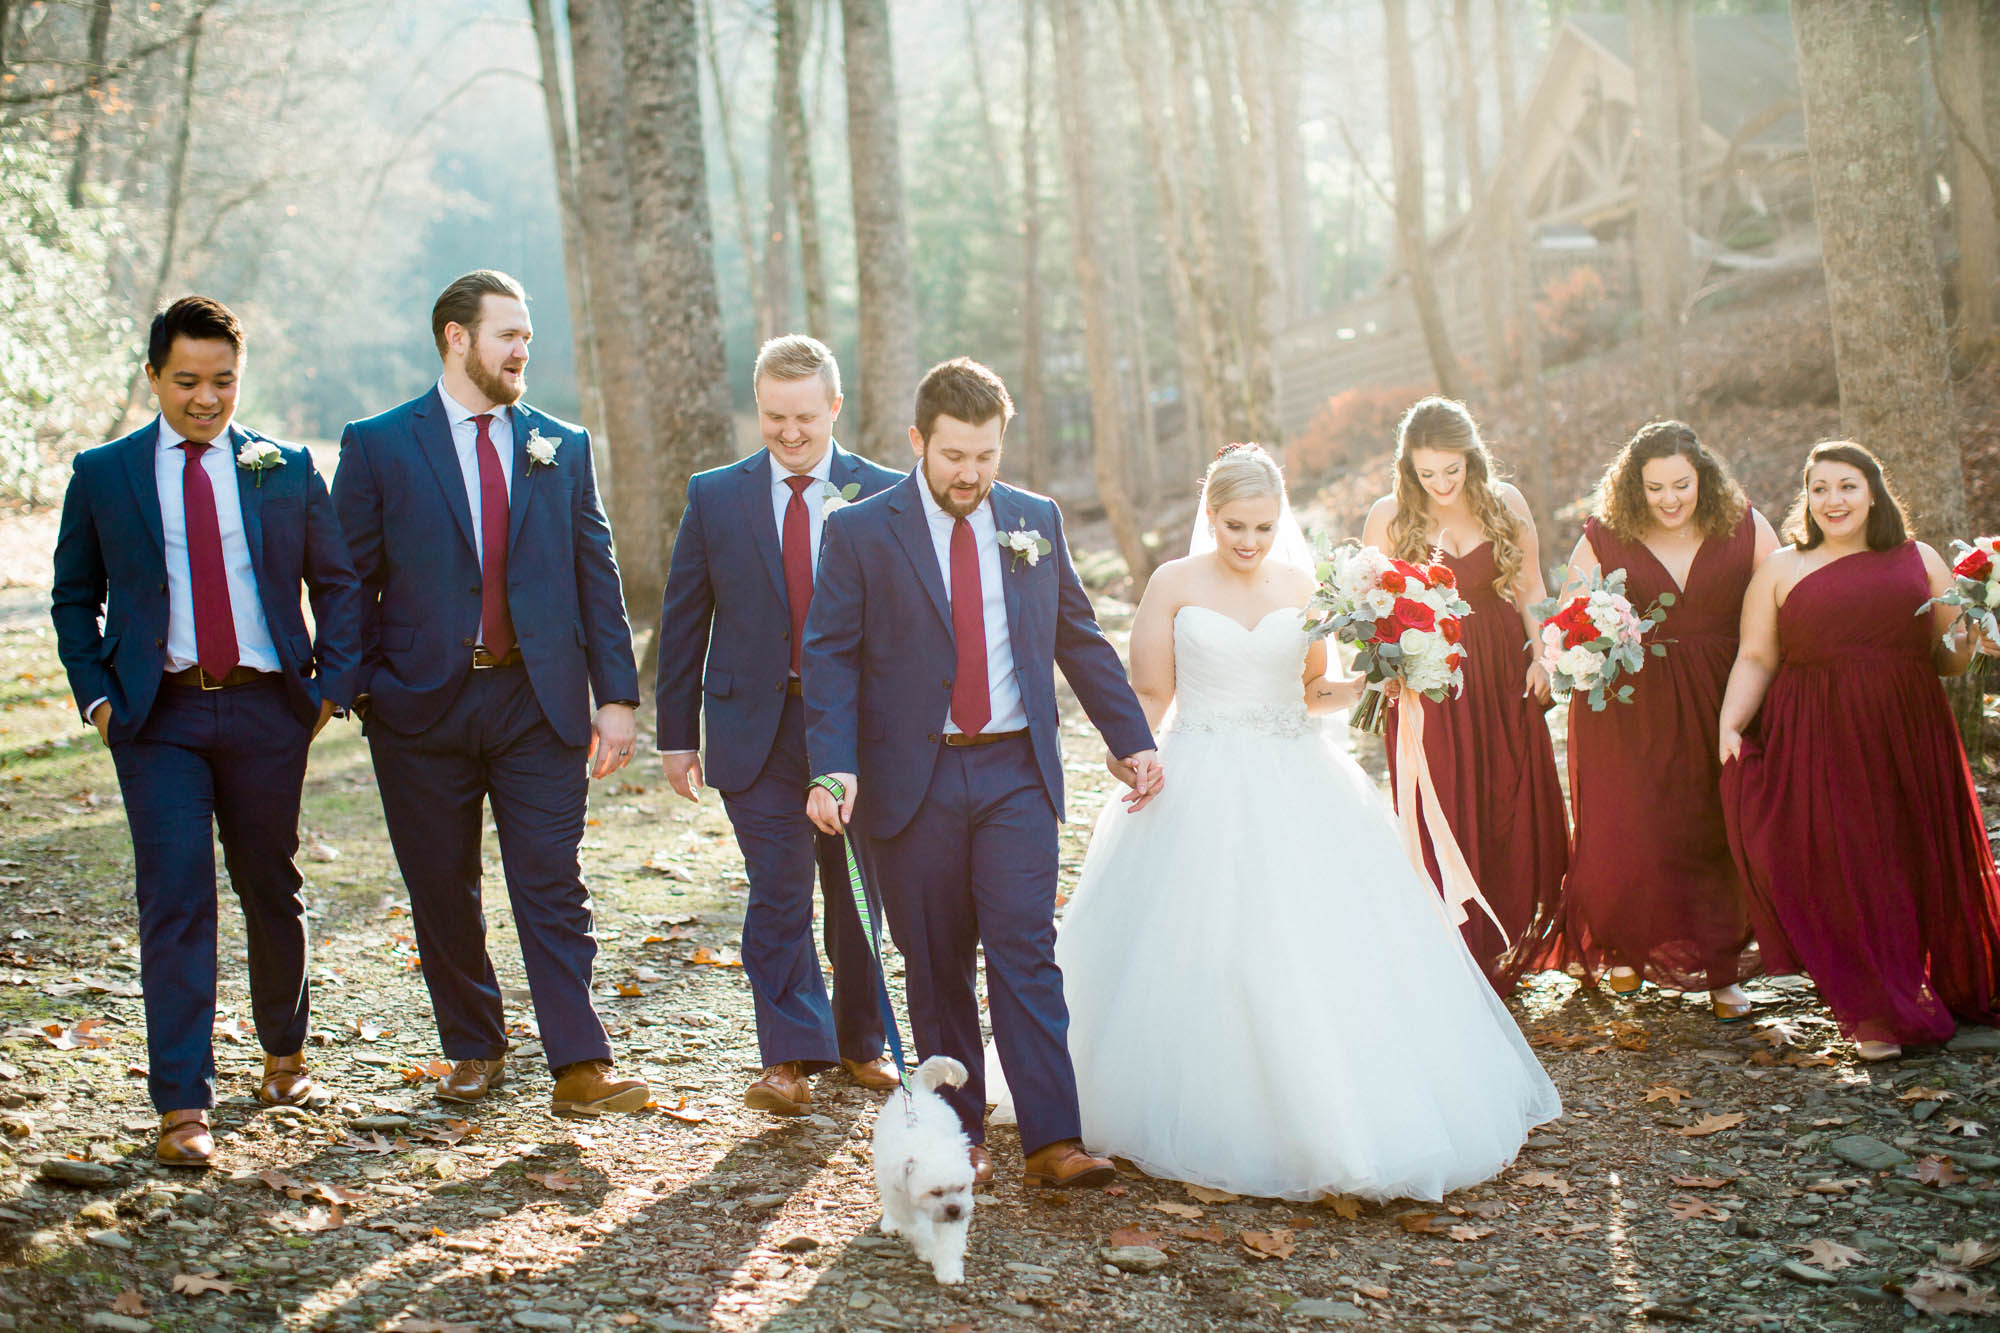 Bridal party walking mountain wedding Andrews, nc